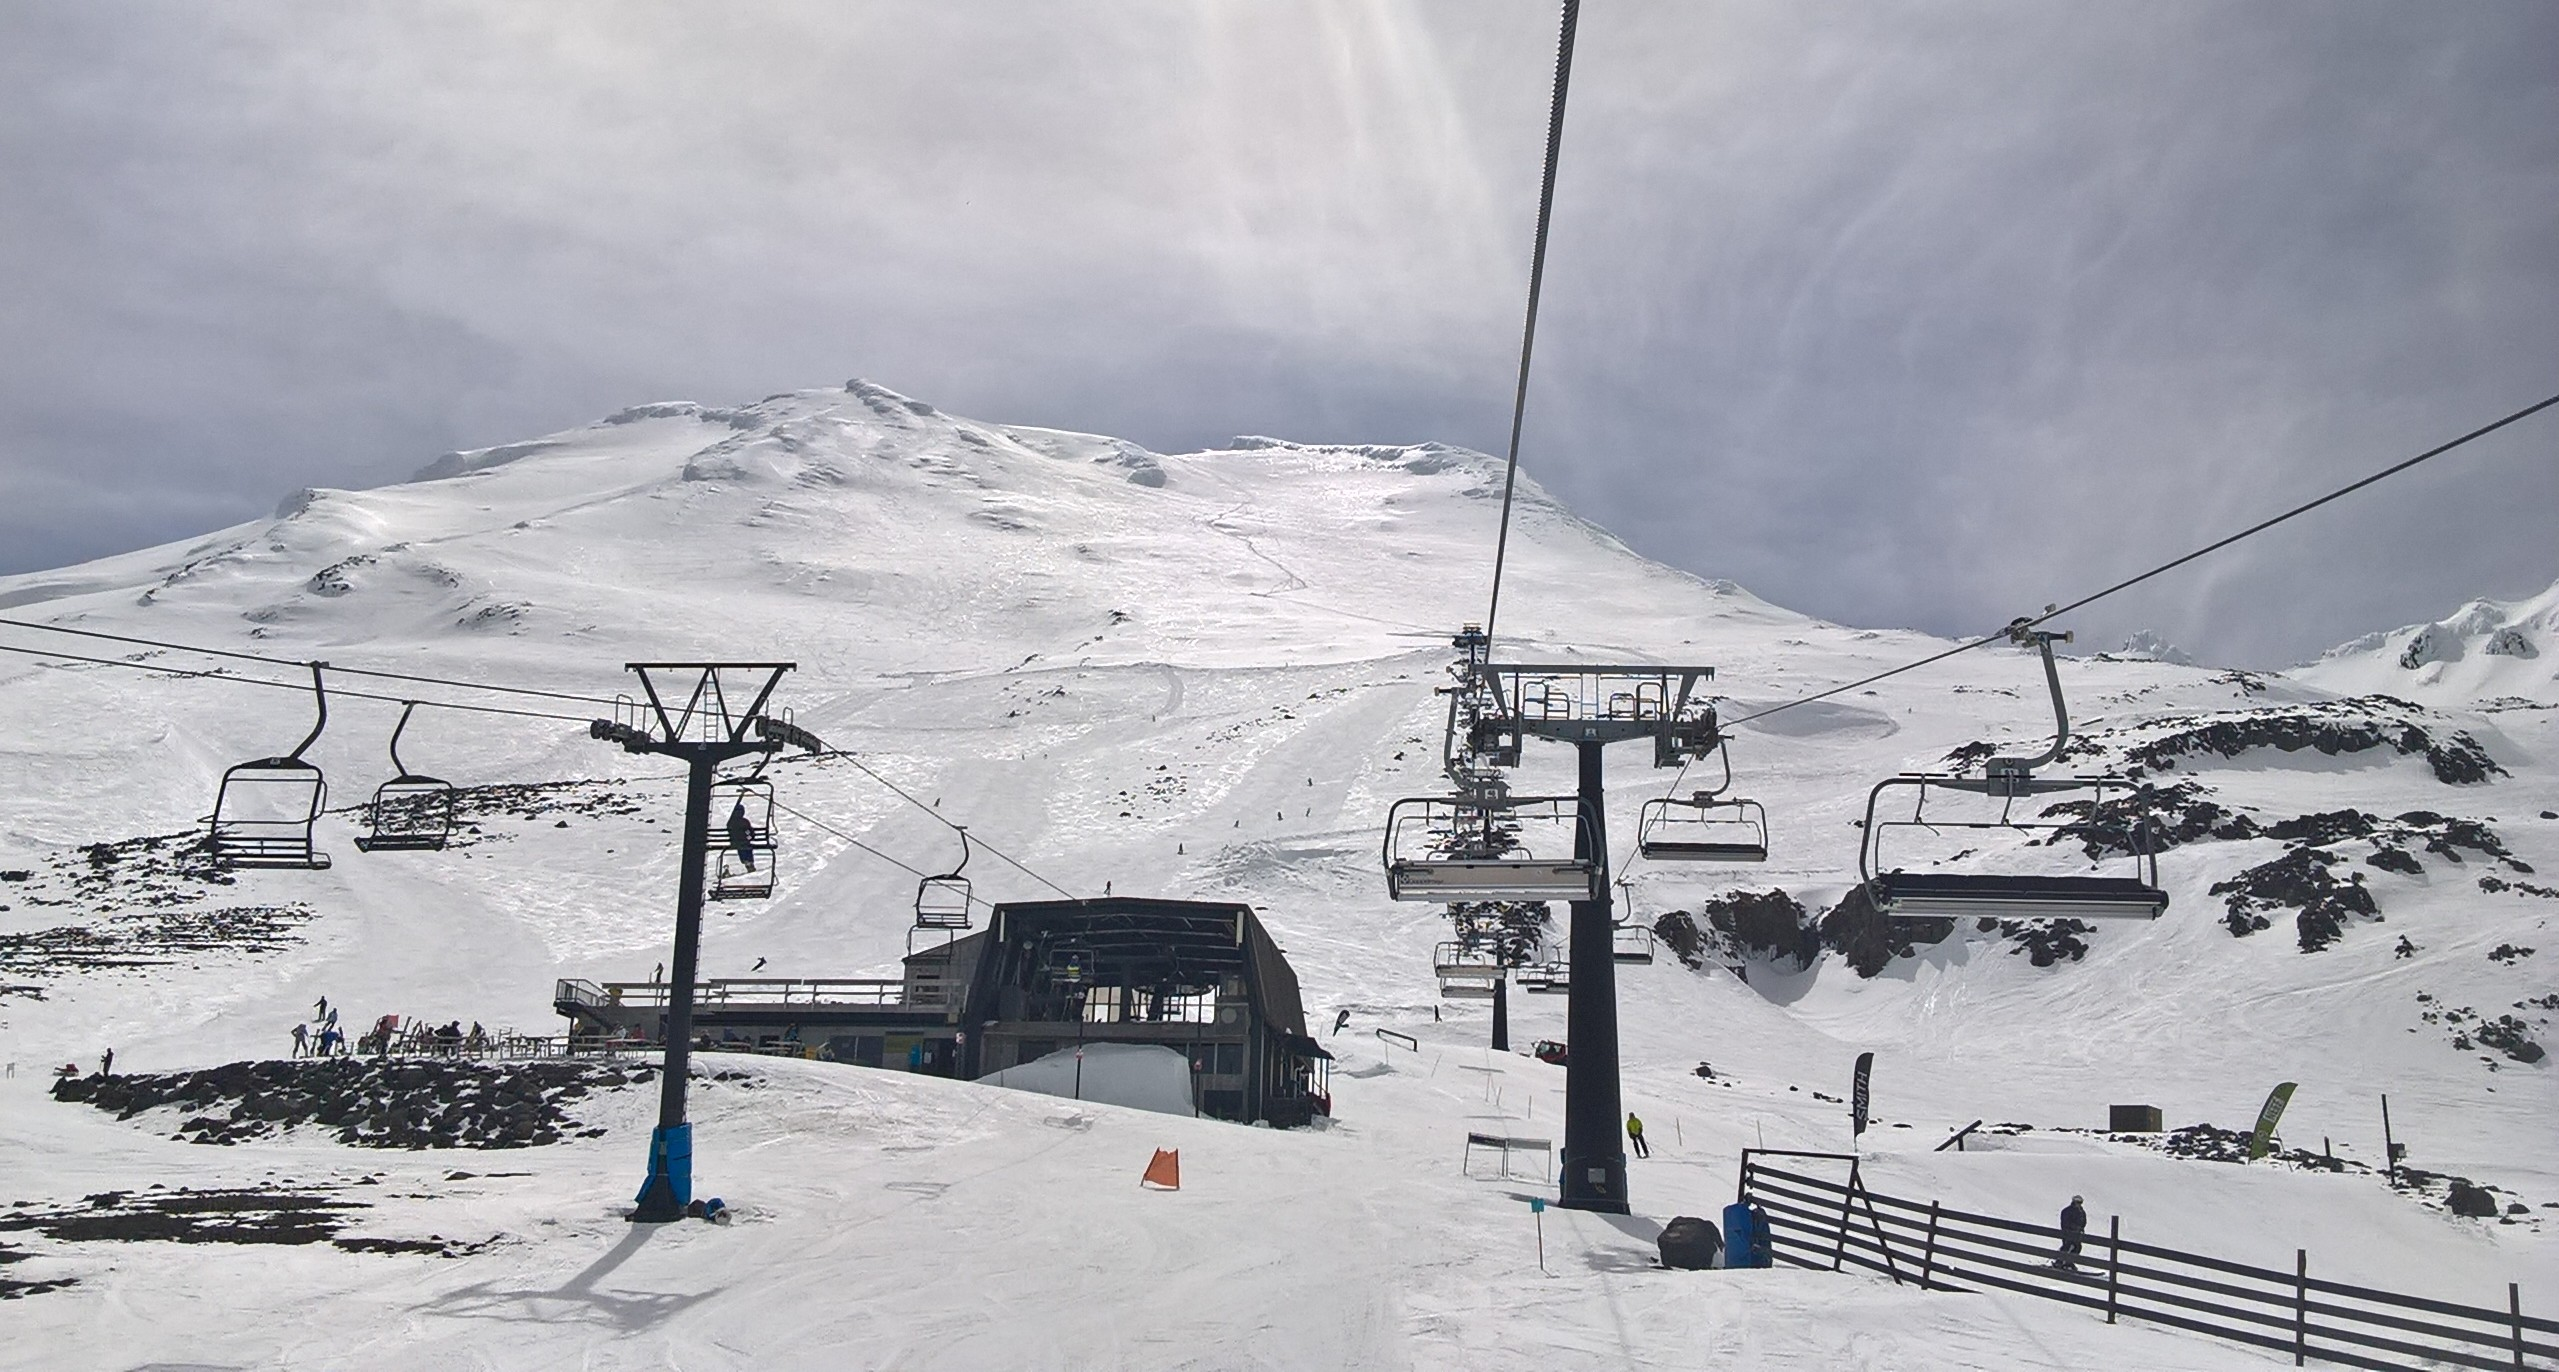 Top of Turoa